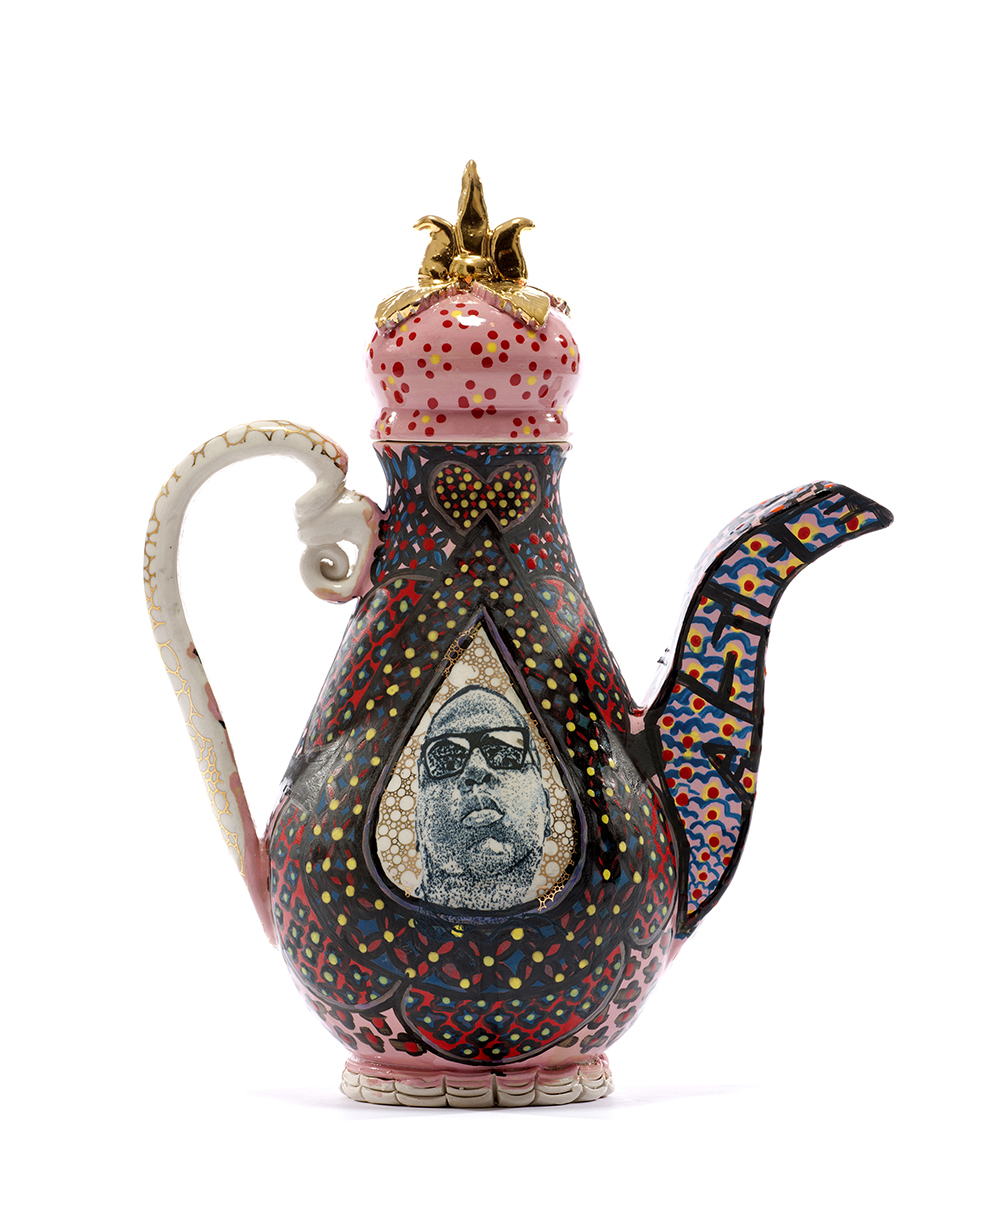 """The Notorious B.I.G Teapot"", Porcelain, 2016. Courtesy of the artist."